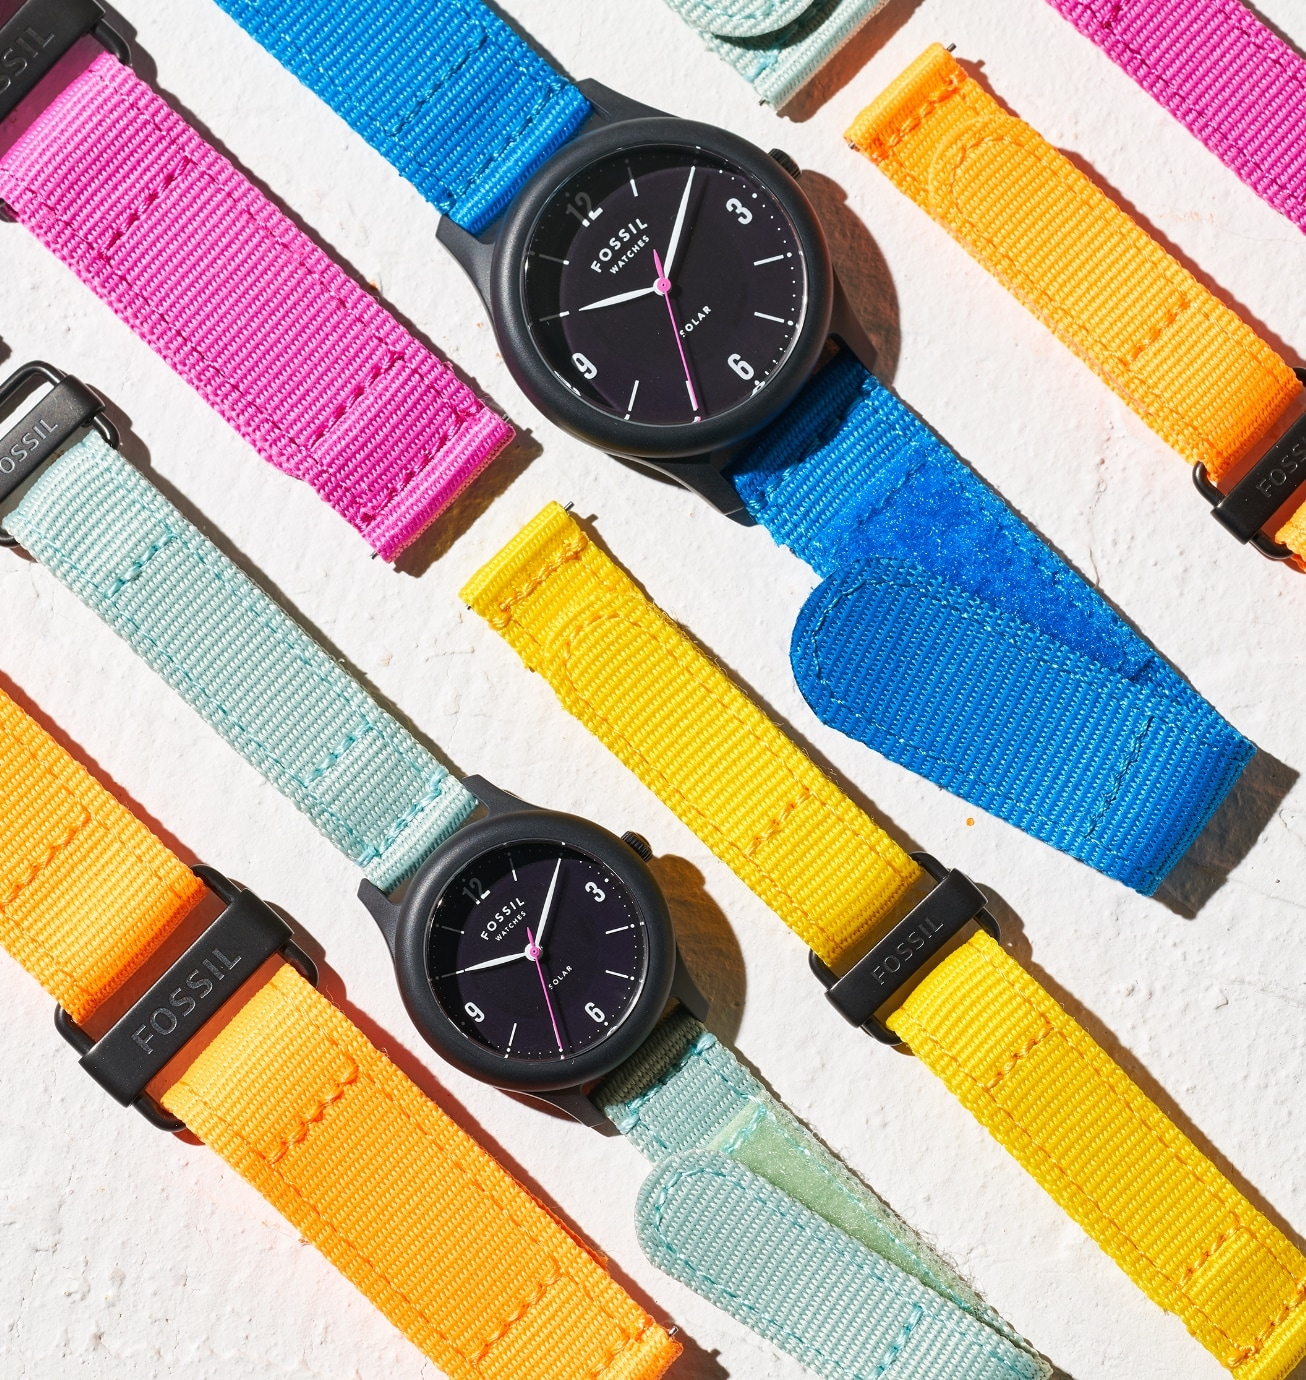 Limited Edition Solar Watches plus interchangeable straps.